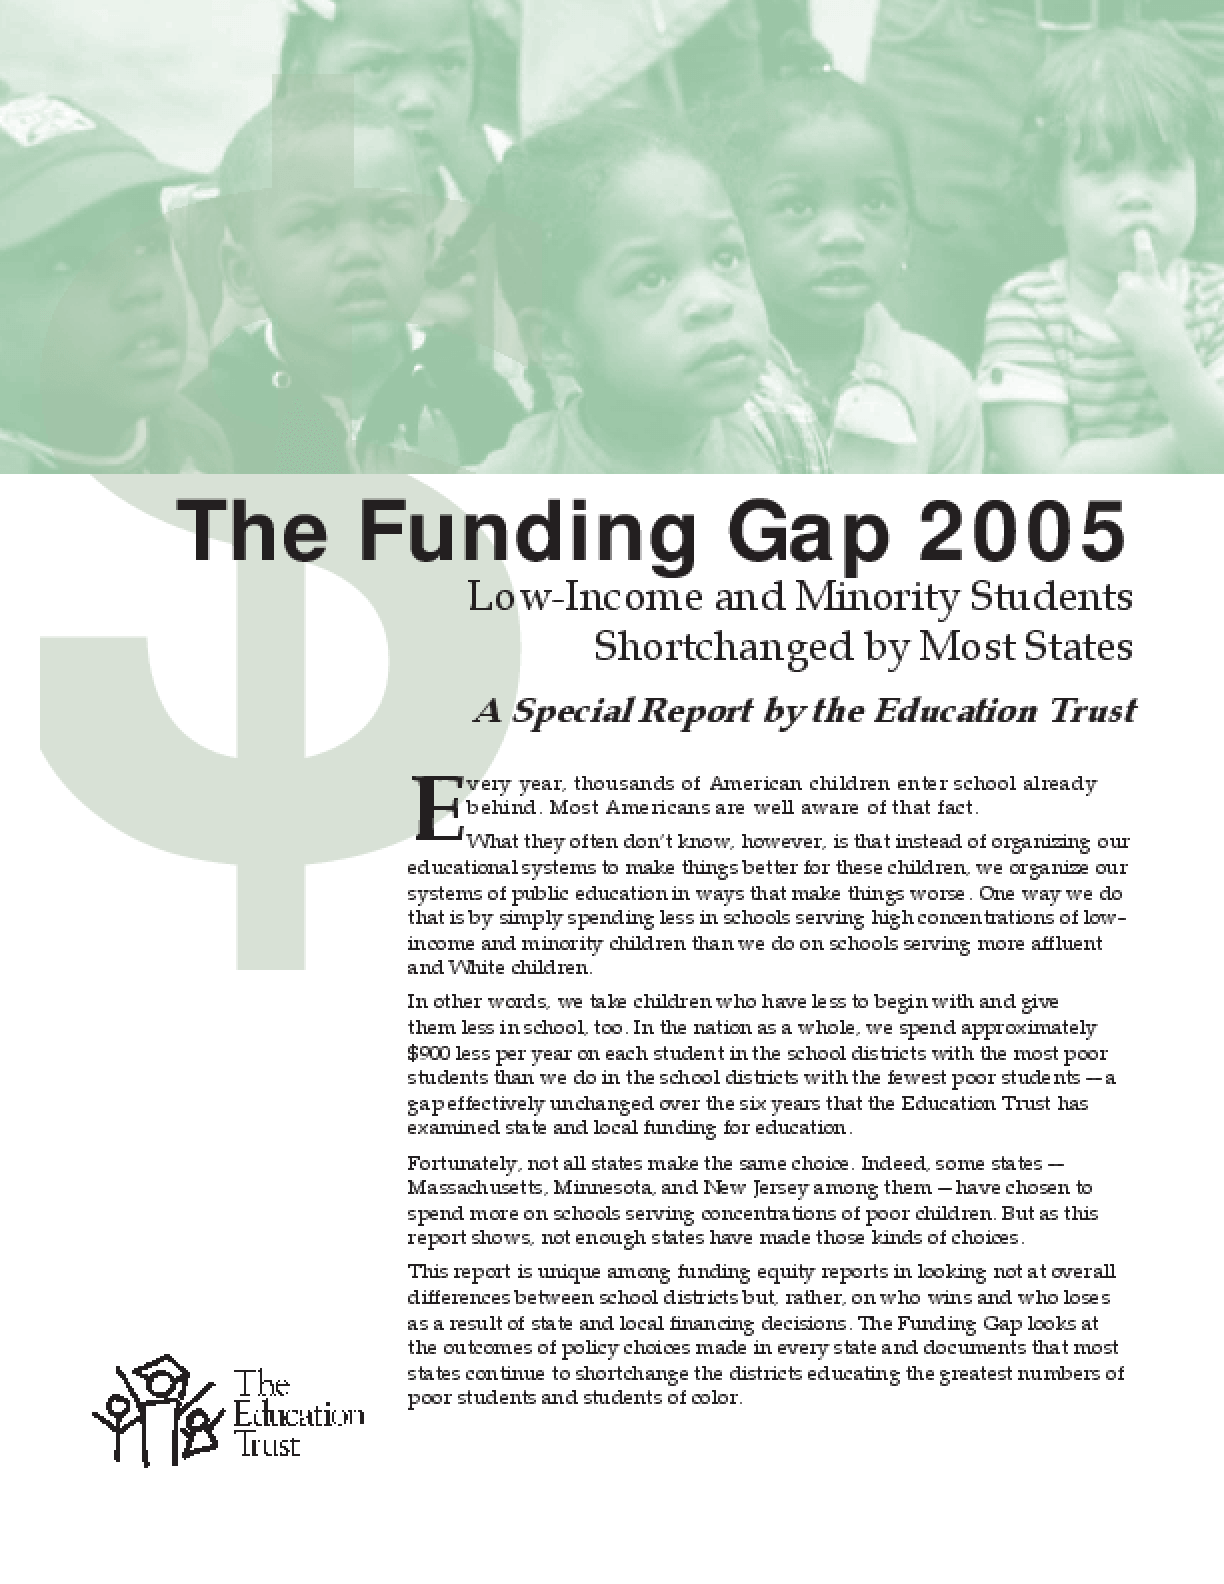 Funding Gap 2005: Most States Shortchange Poor and Minority Students